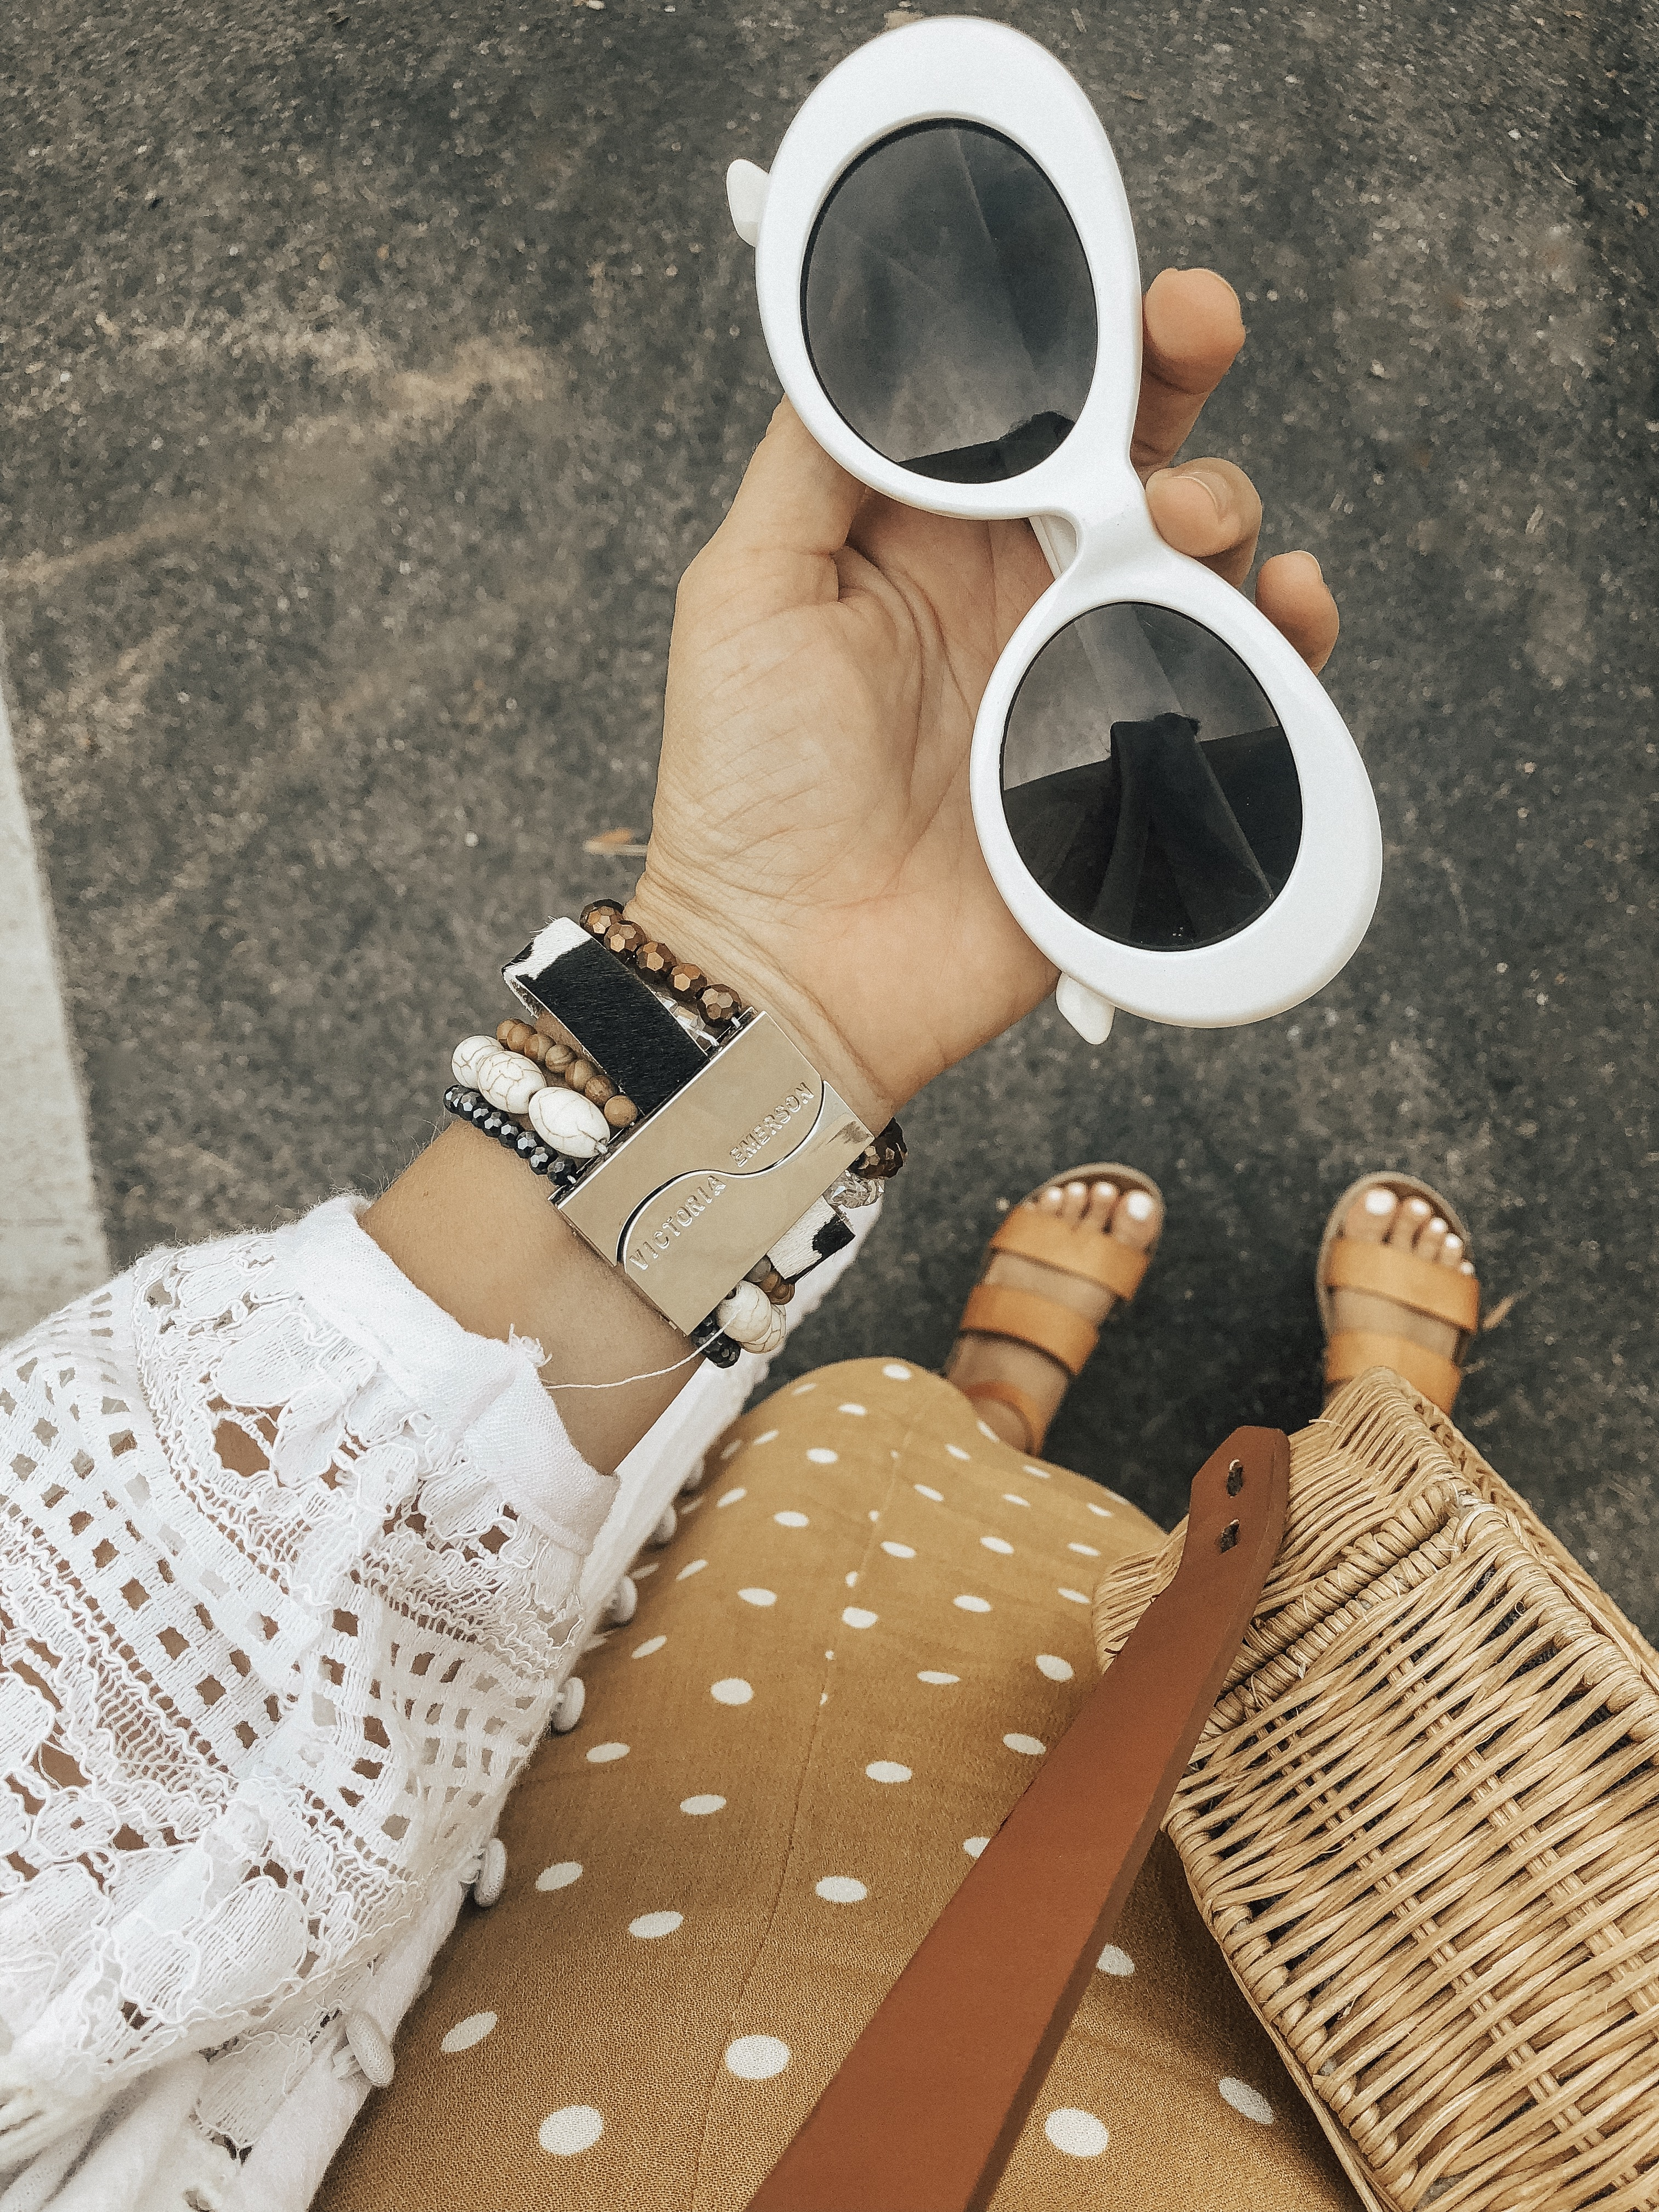 BOHO BRACELETS + VICTORIA EMERSON- Jaclyn De Leon Style + bohemian style + bracelet stack + jewelry trends + how to style accessories + summer outfit + fall style + mom style + polka dot romper + white kimono + stying tips + statement bracelets